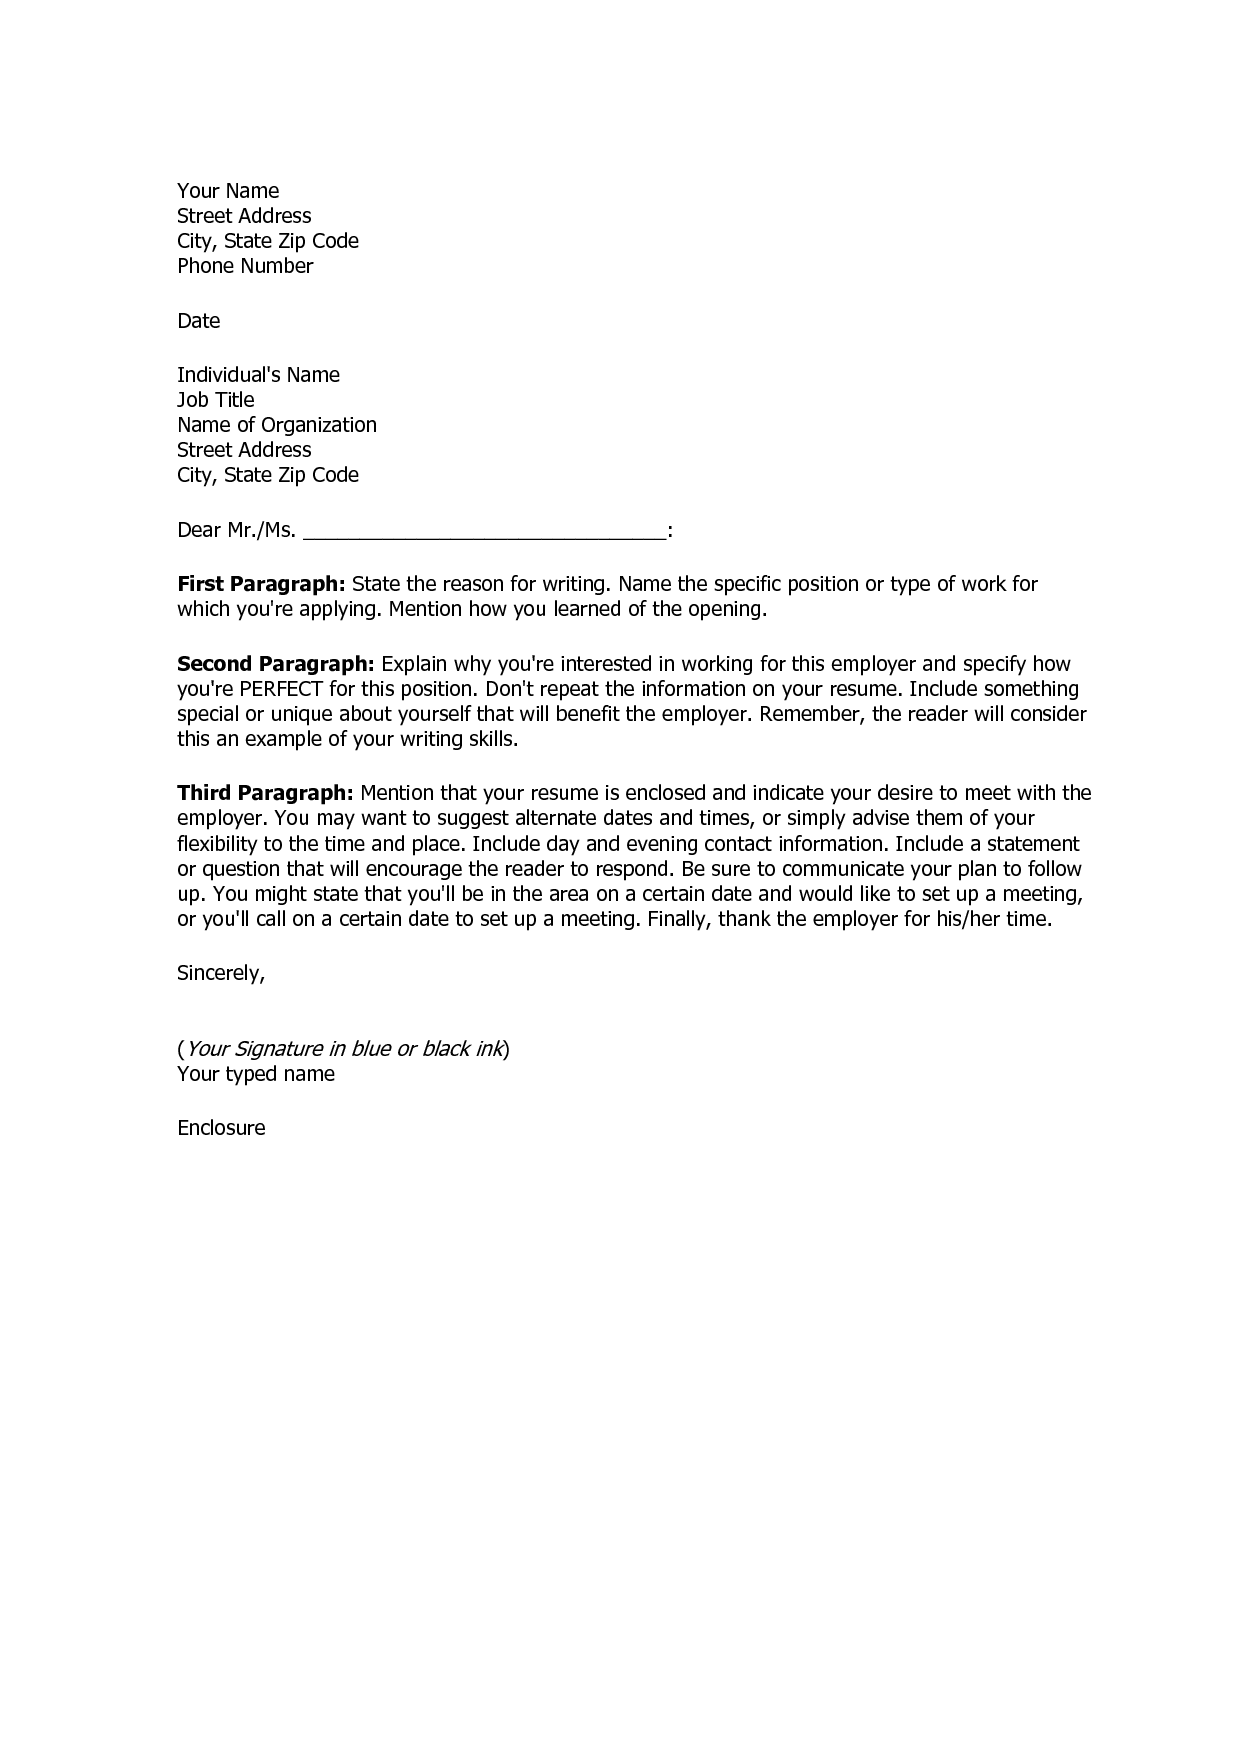 cover letter examples for job simple cover letter samplecover letter samples for 21029